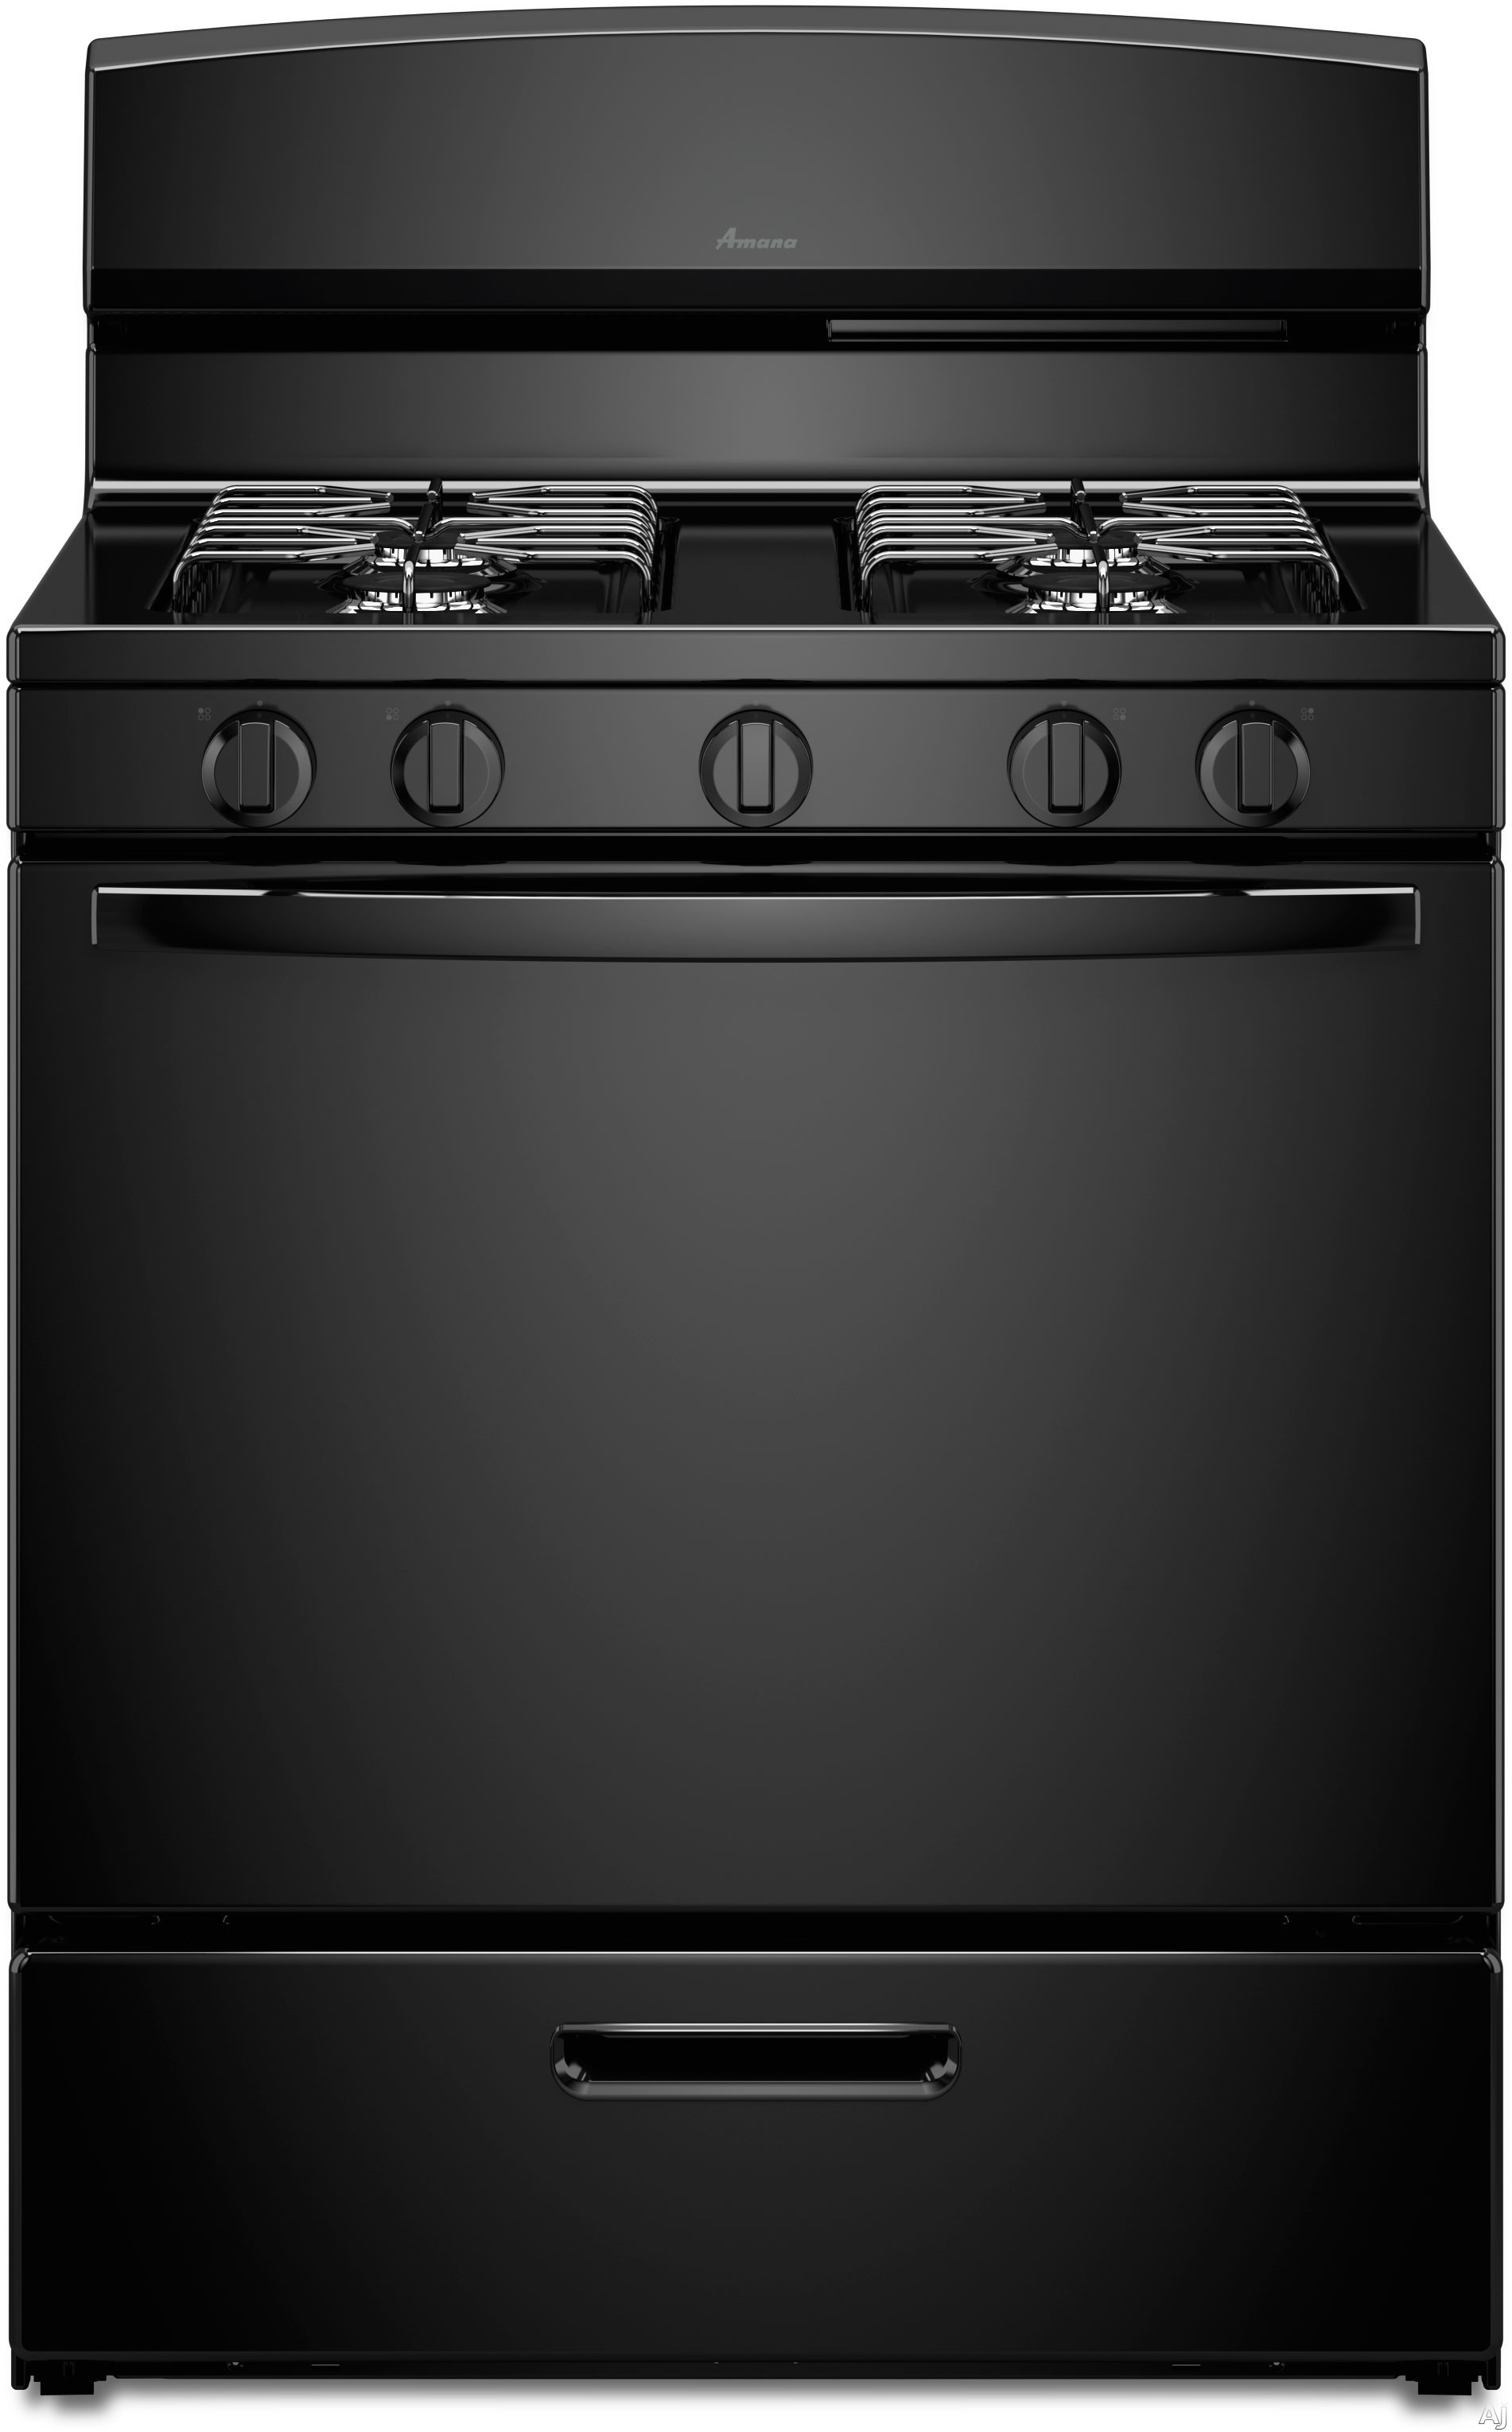 Amana Agr4230bab 30 Inch Freestanding Gas Range With 5.1 Cu. Ft. Capacity, 4 Sealed Burners, Spillsaver Upswept Cooktop, Broiler Drawer And Lp Gas Conversion Kit Included: Black